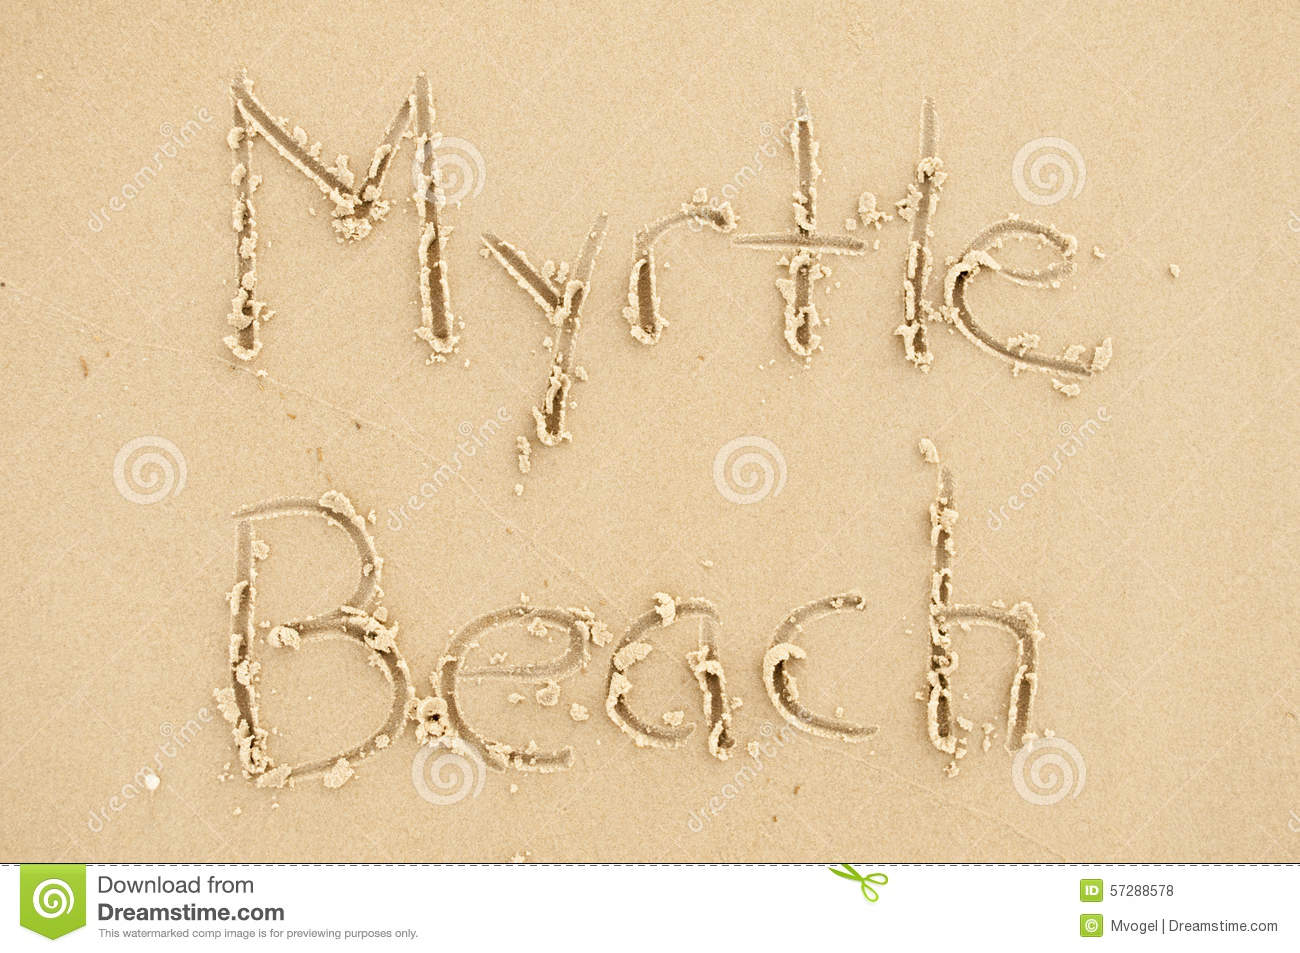 Myrtle Beach Stock Photo.